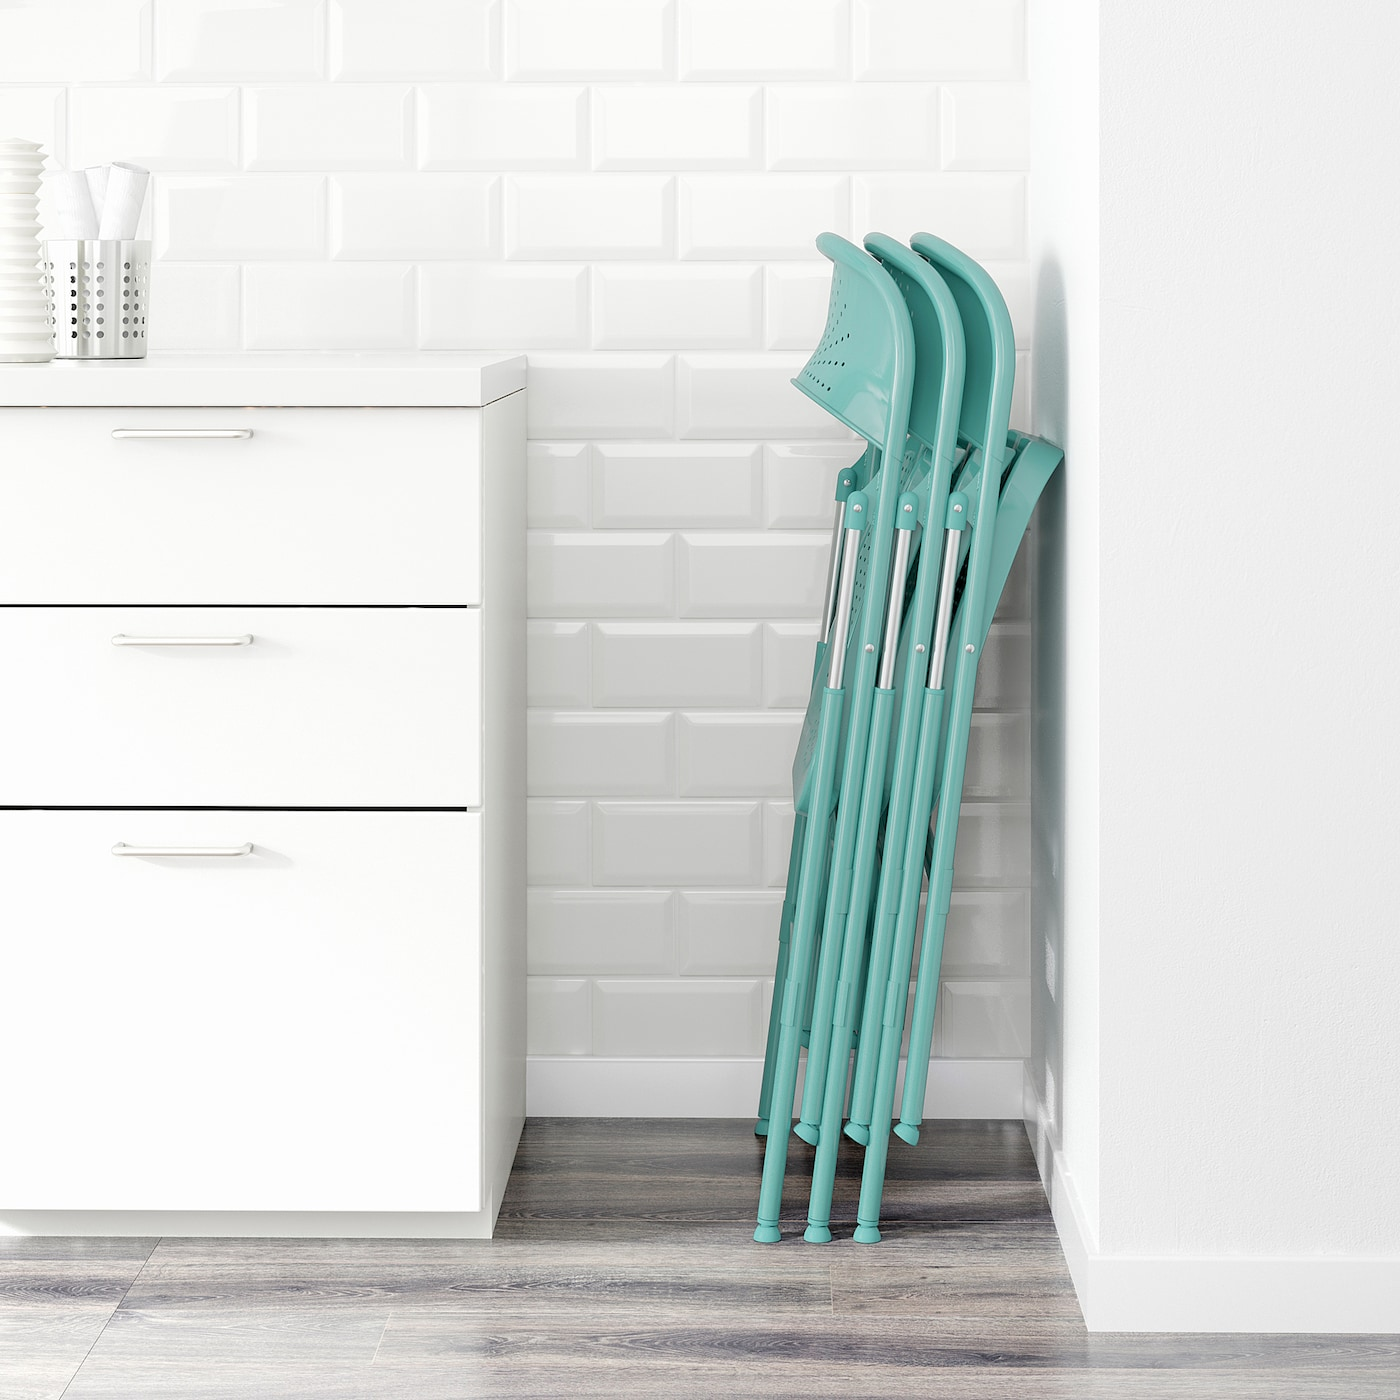 FRODE Chaise pliante, turquoise IKEA